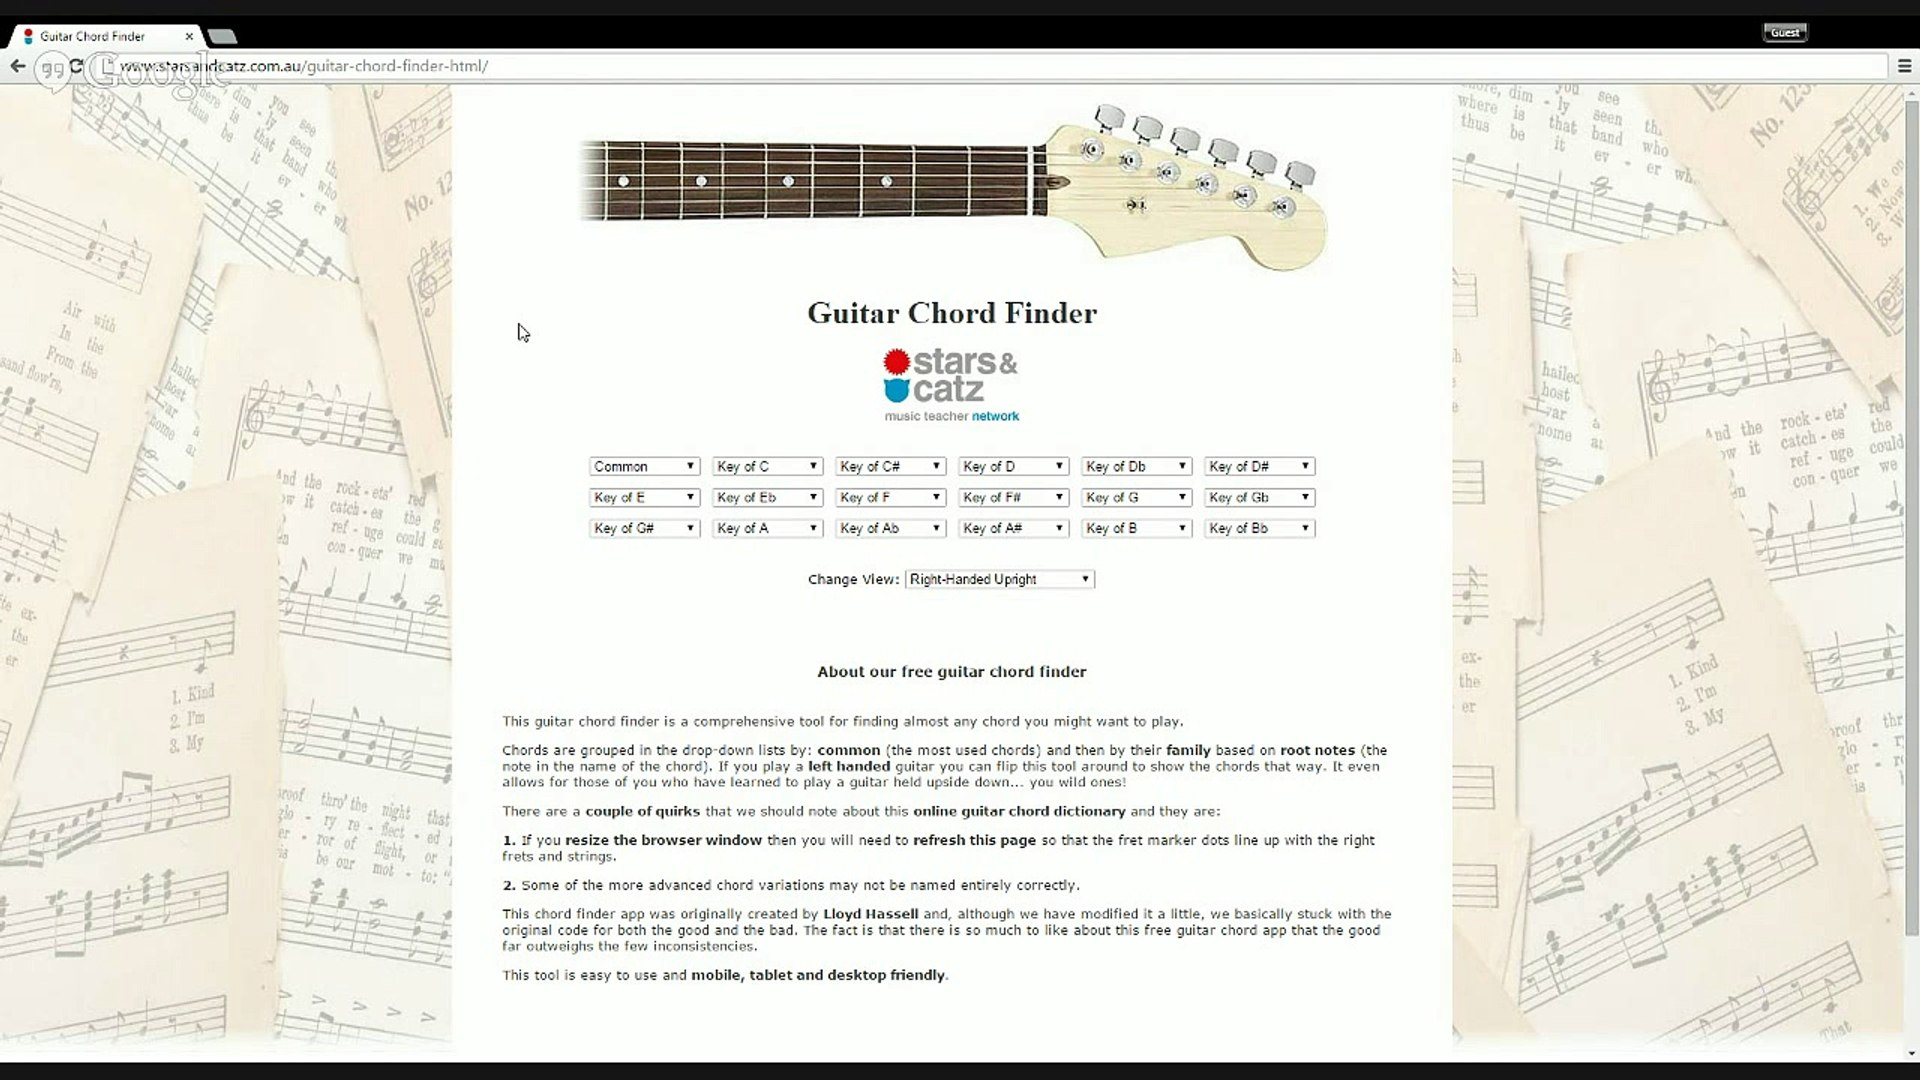 Guitar Chord Finder Free Online Guitar Chord Finder Dictionary Mobile Friendly